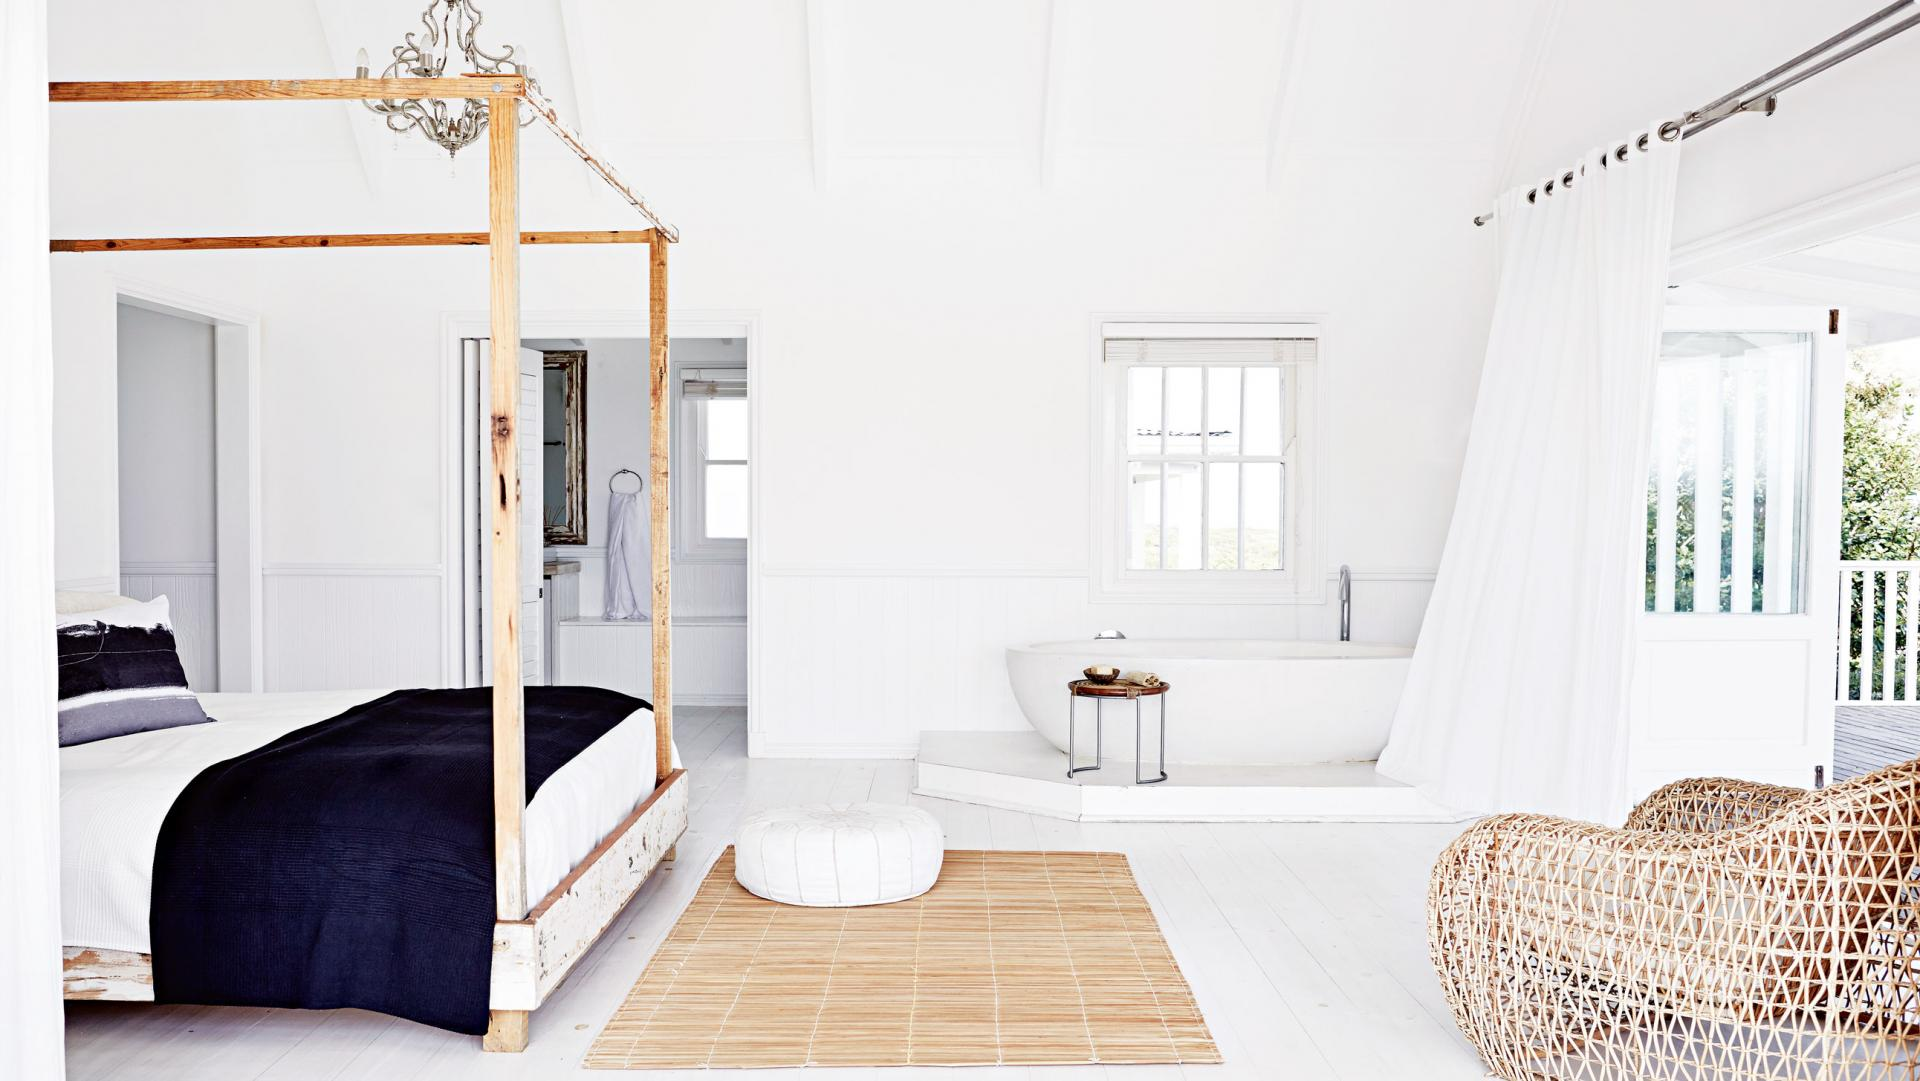 bedroom-south-african-home-dec15-20151210121150-q75dx1920y-u1r1g0c